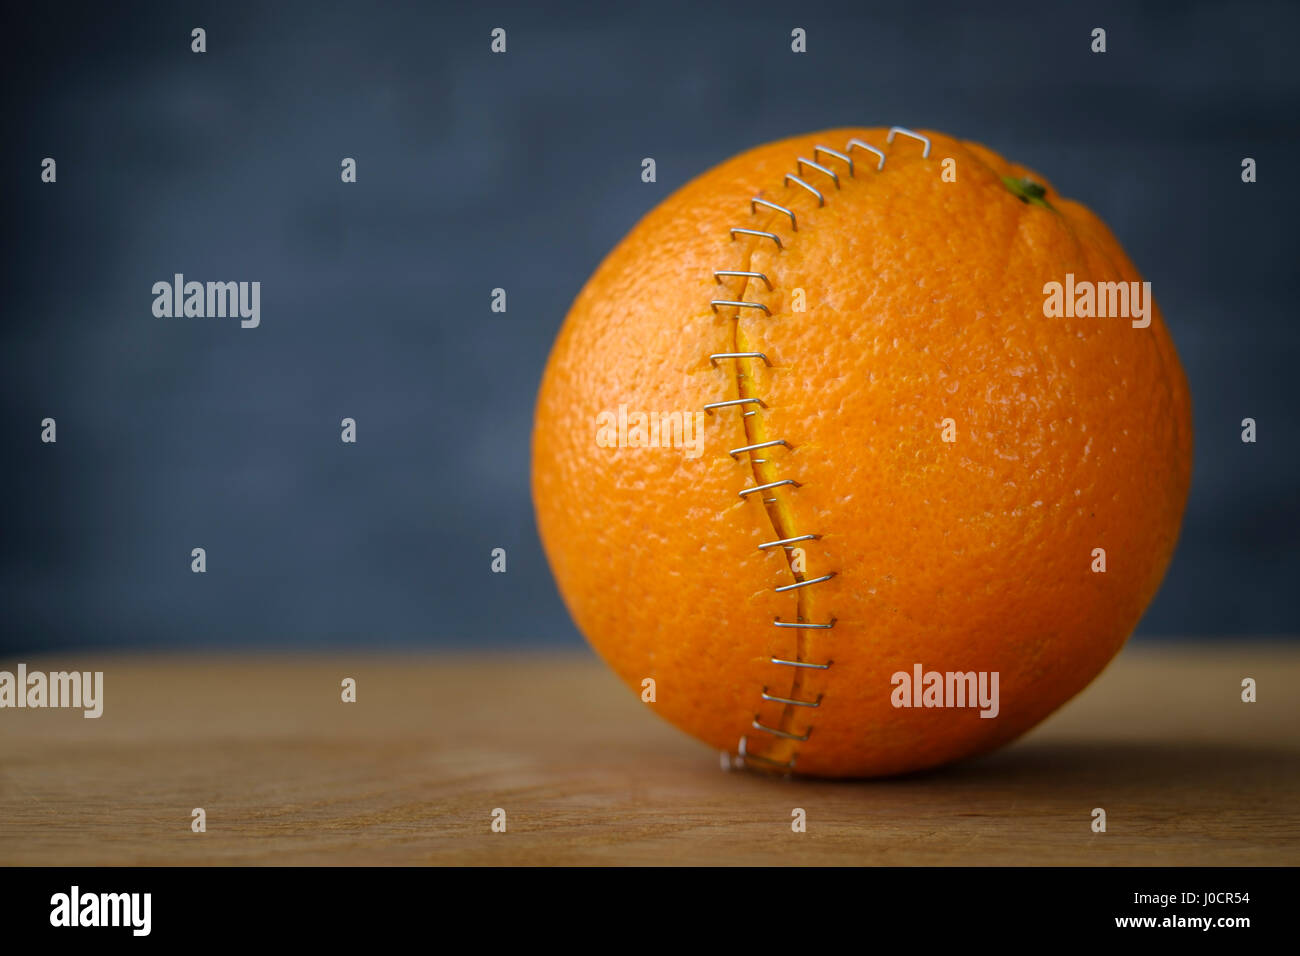 orange with stainless steel stitches that hold the husk together - Stock Image